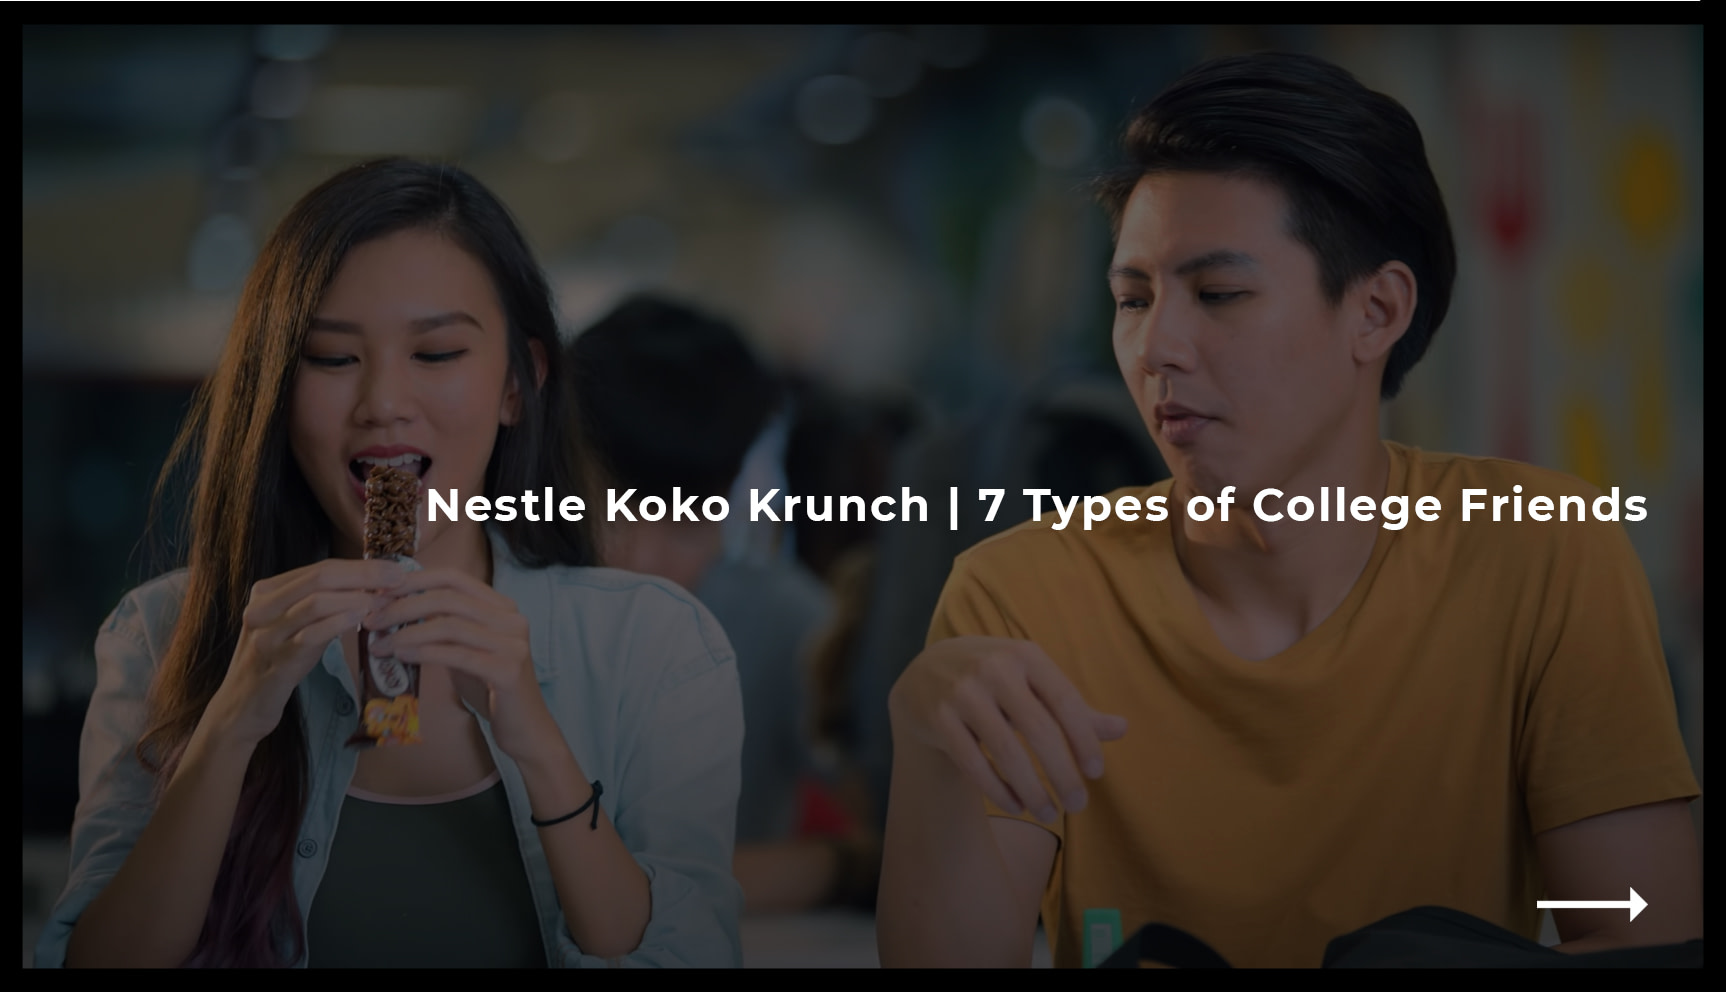 Nestle Koko Krunch - 7 Types of College Friends